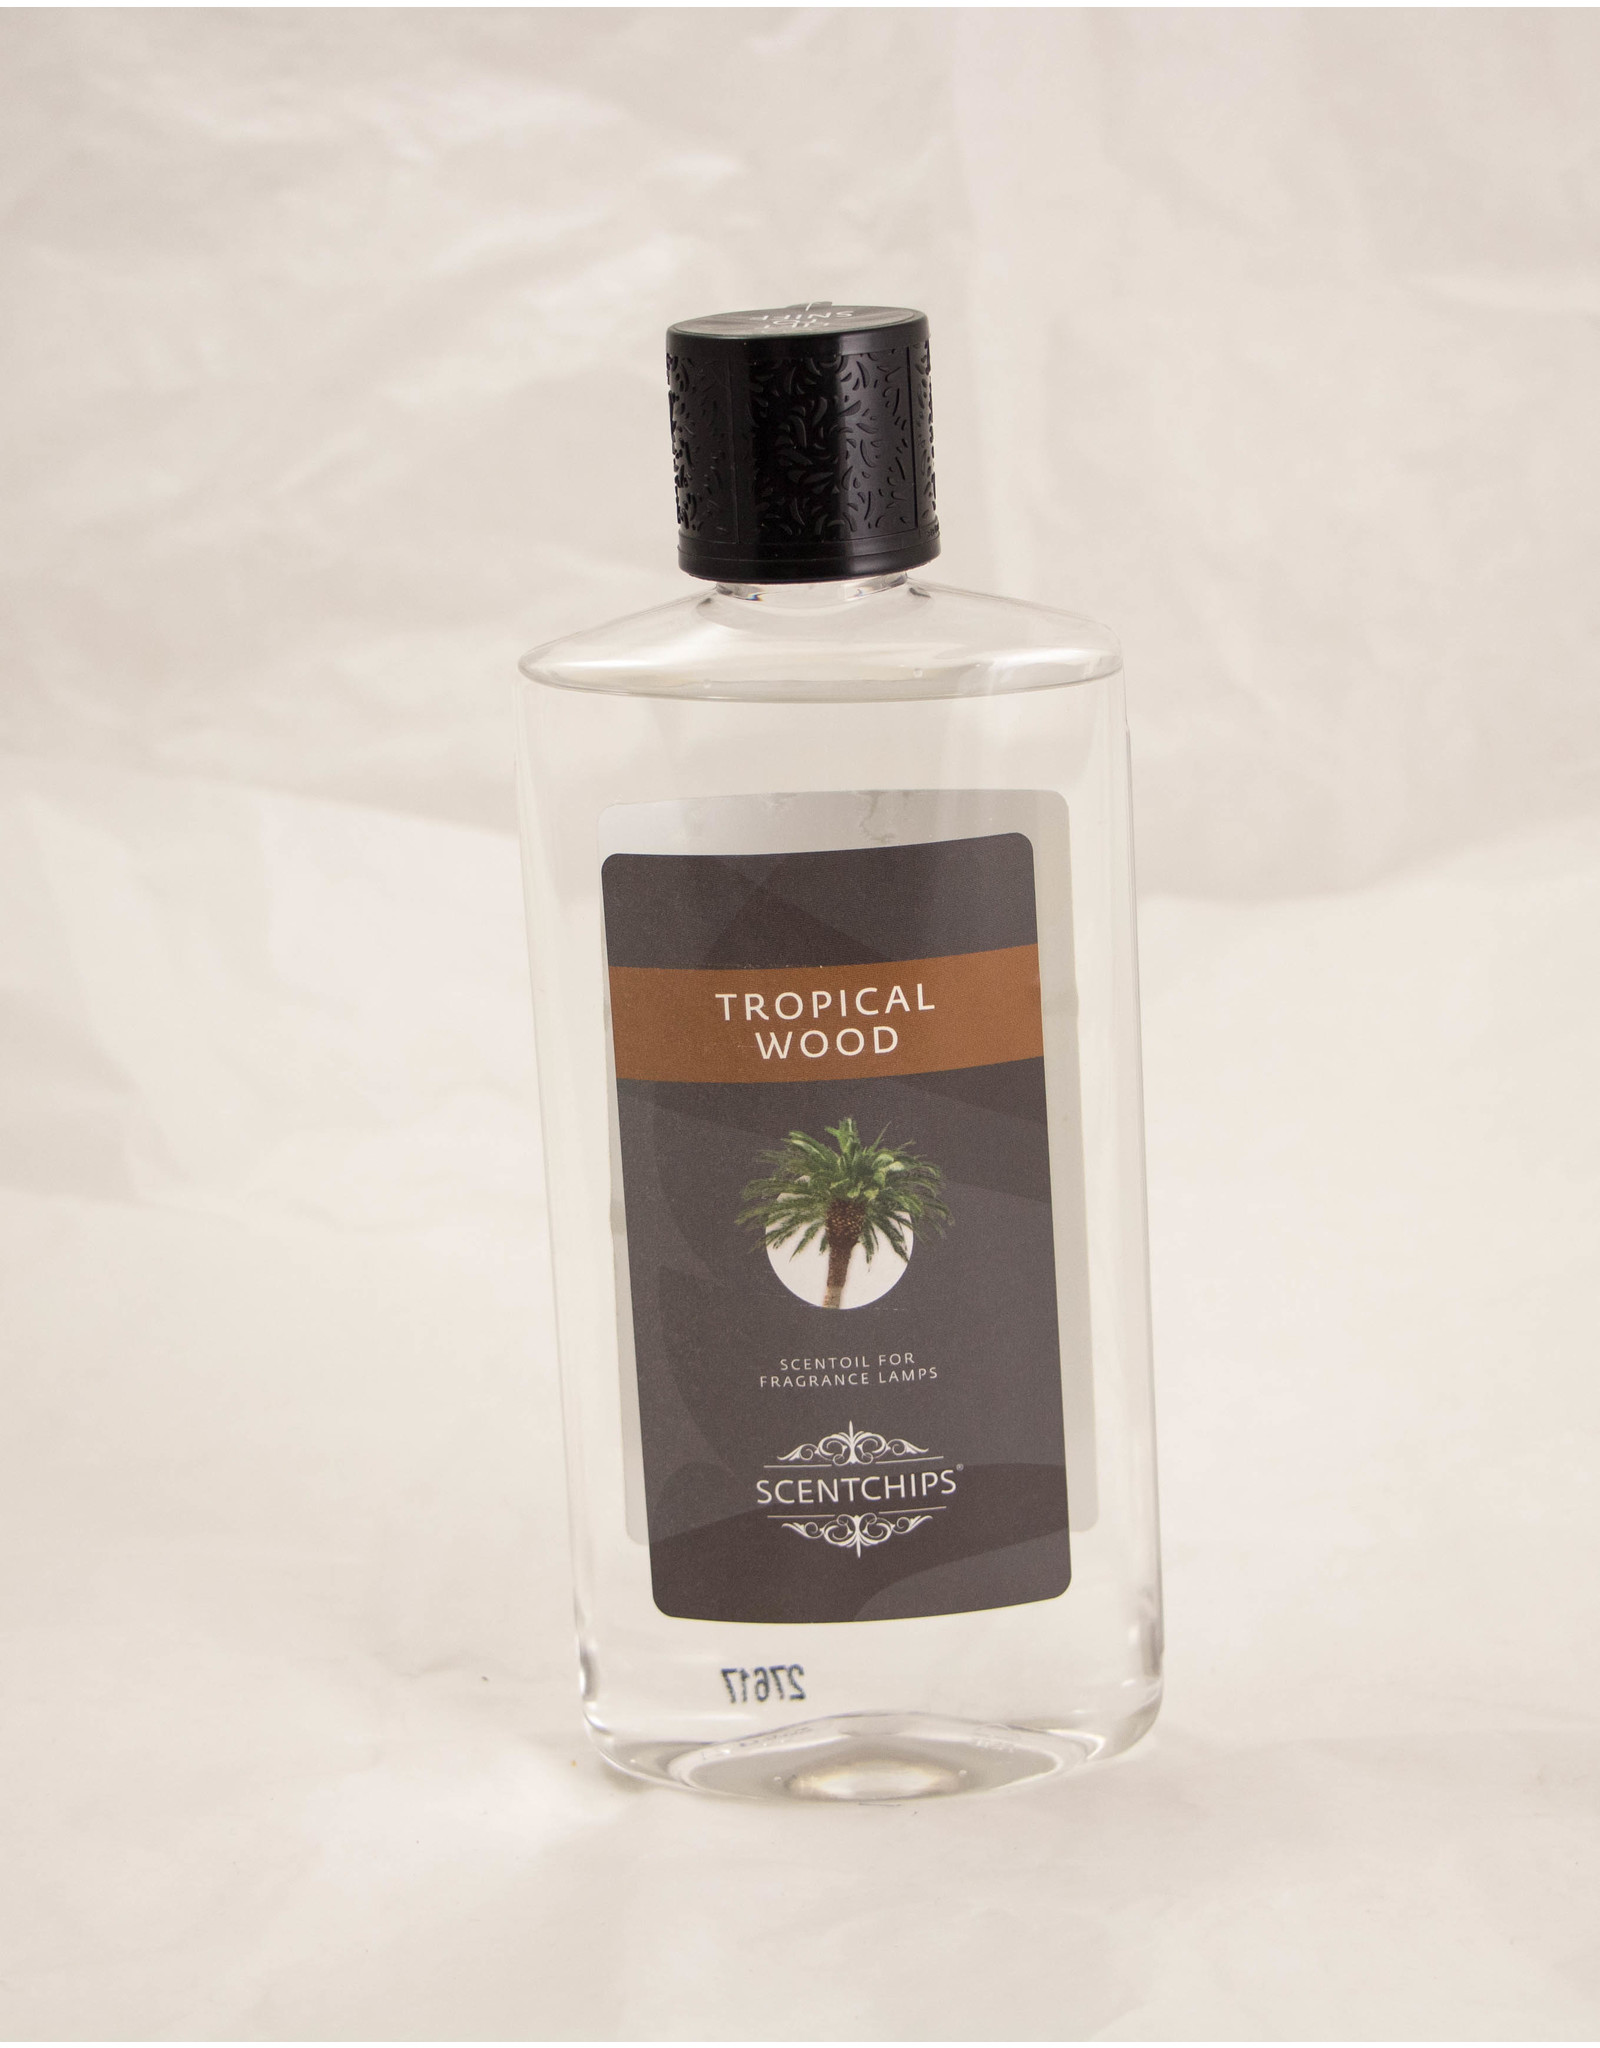 ScentChips Tropical Wood 475ml